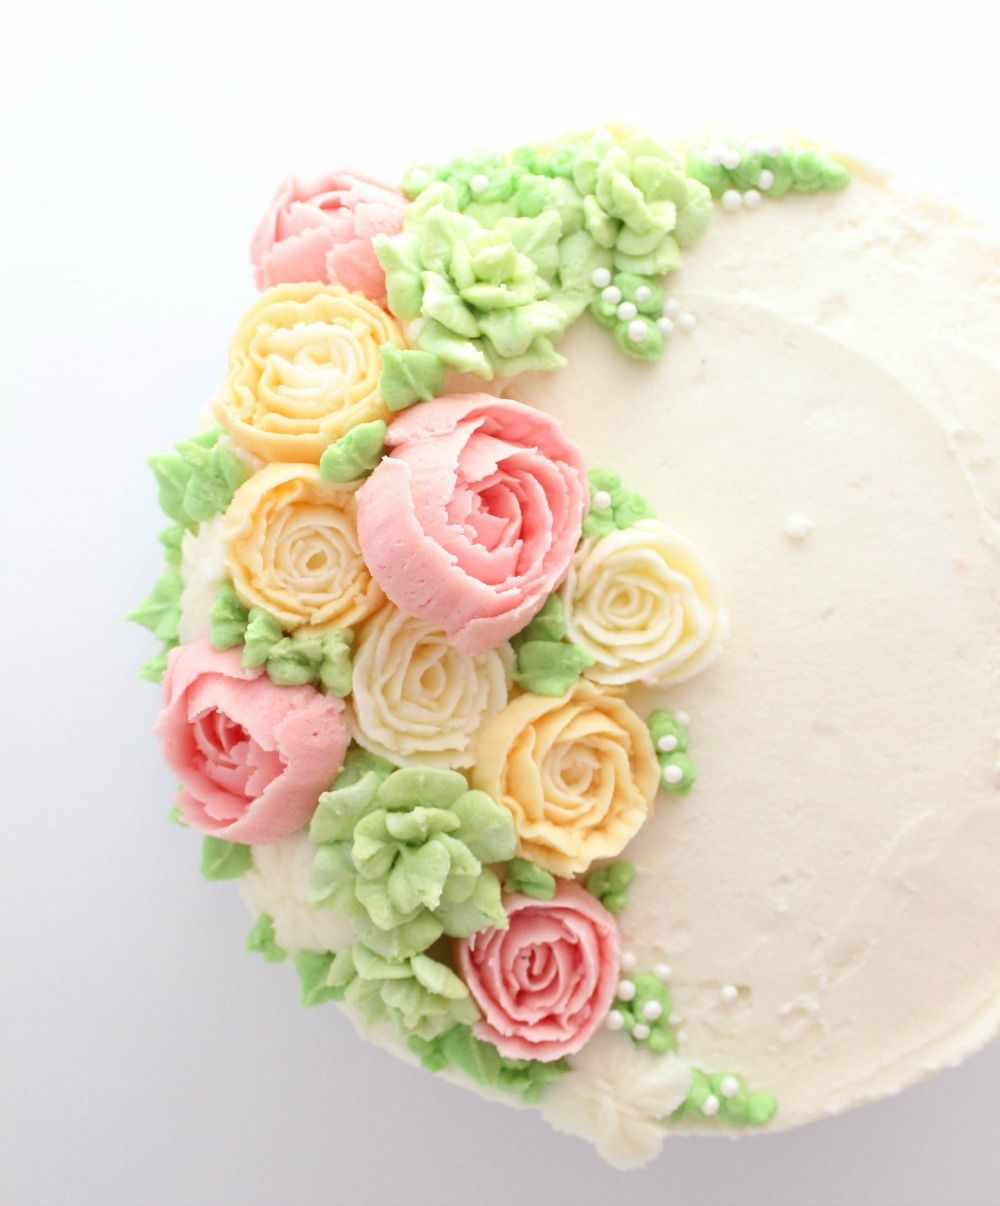 Cake Decorating Cream Flowers : Buttercream Flower Cake Buttercream flowers, Decorating ...